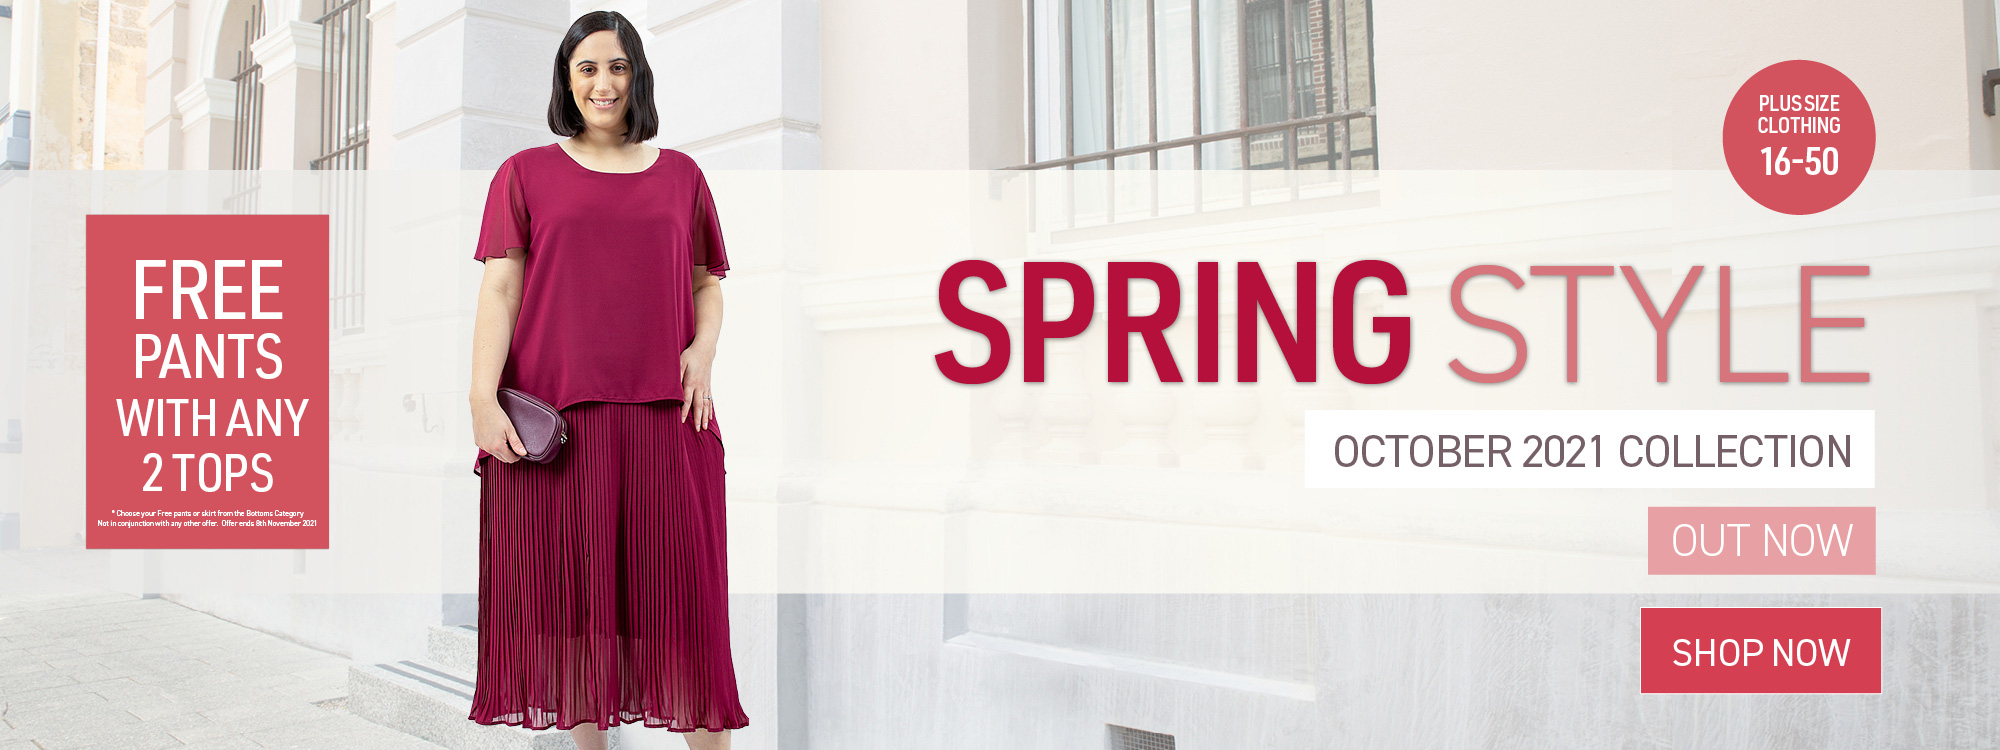 Spring Style Collection - out now